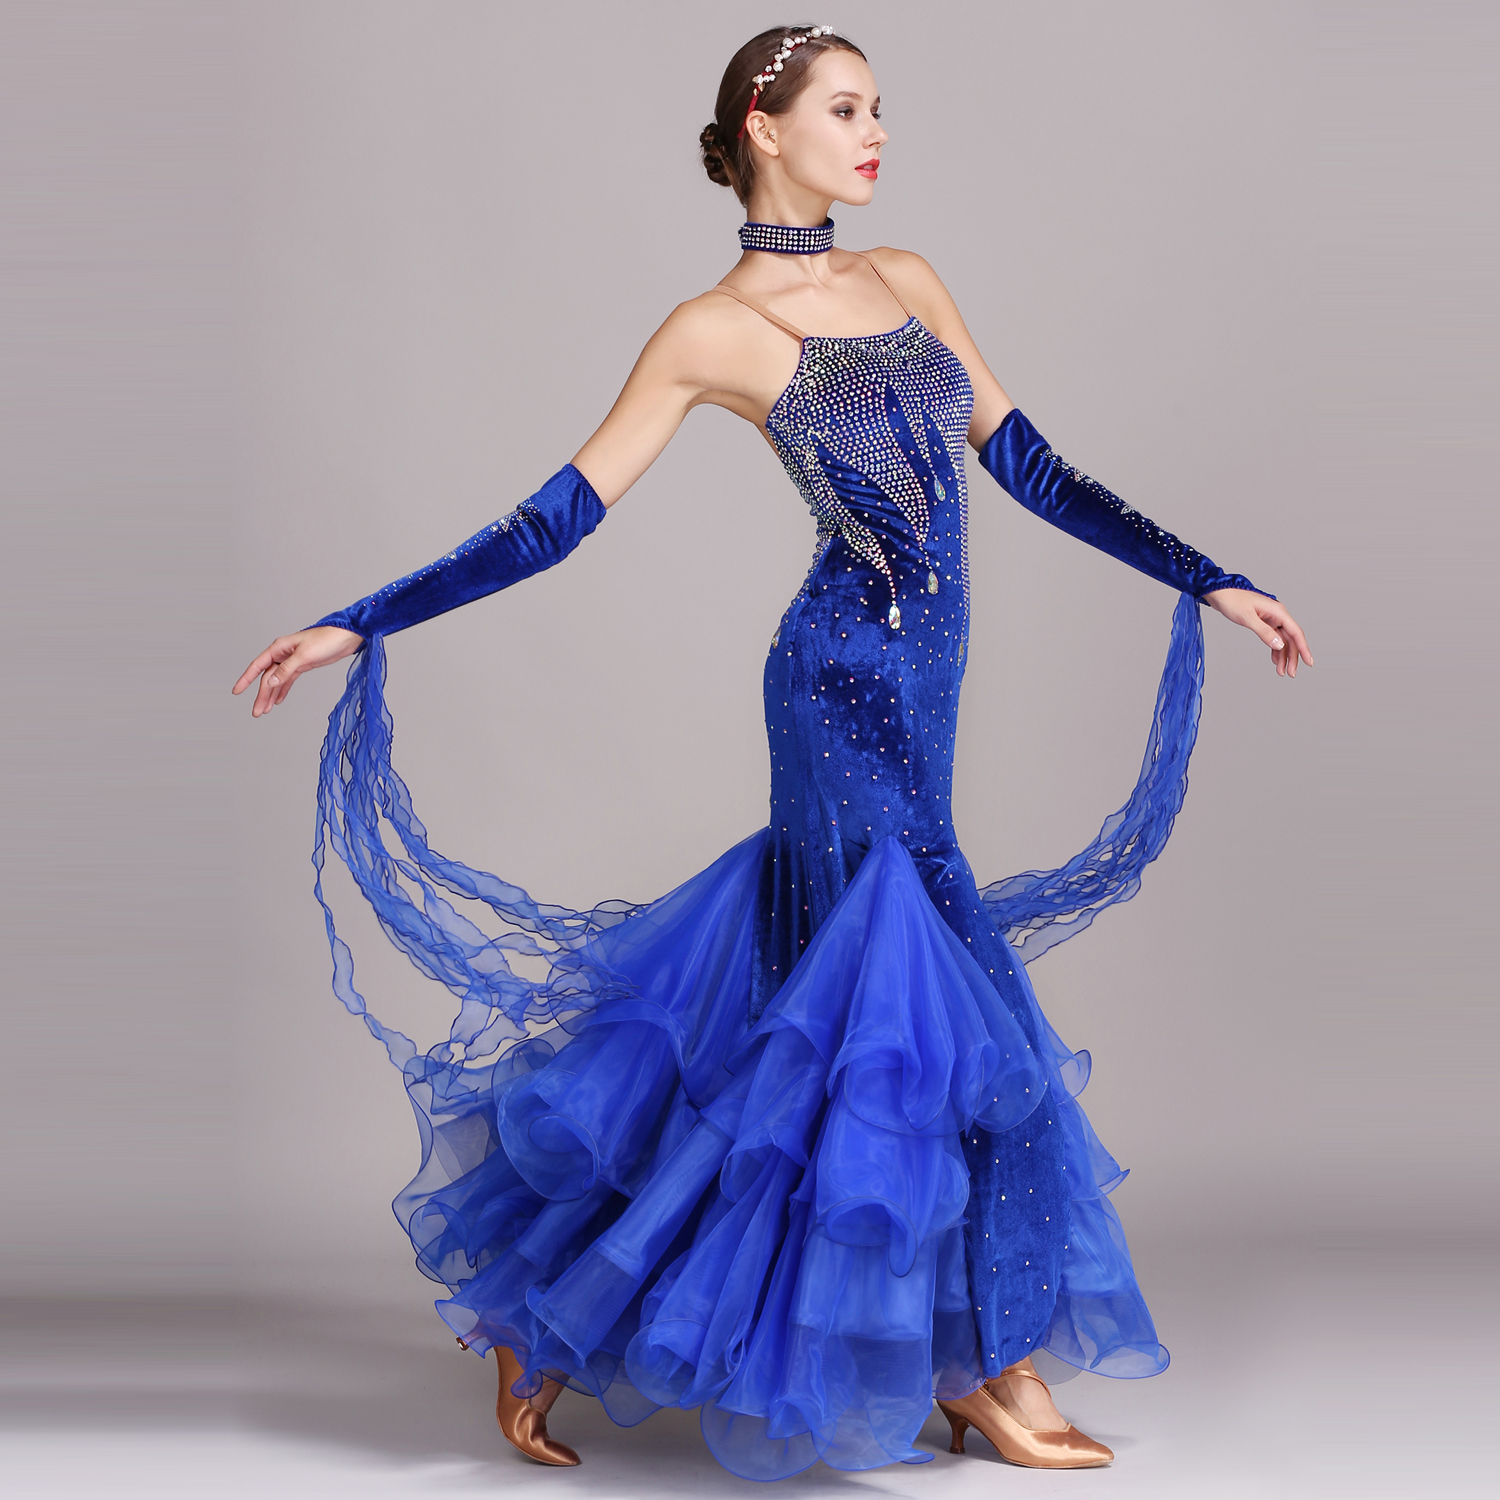 S7016 Modern Dance Costume Women Ladies Adults Waltzing Tango Dancing Dress Ballroom Costume Evening Party DressS7016 Modern Dance Costume Women Ladies Adults Waltzing Tango Dancing Dress Ballroom Costume Evening Party Dress